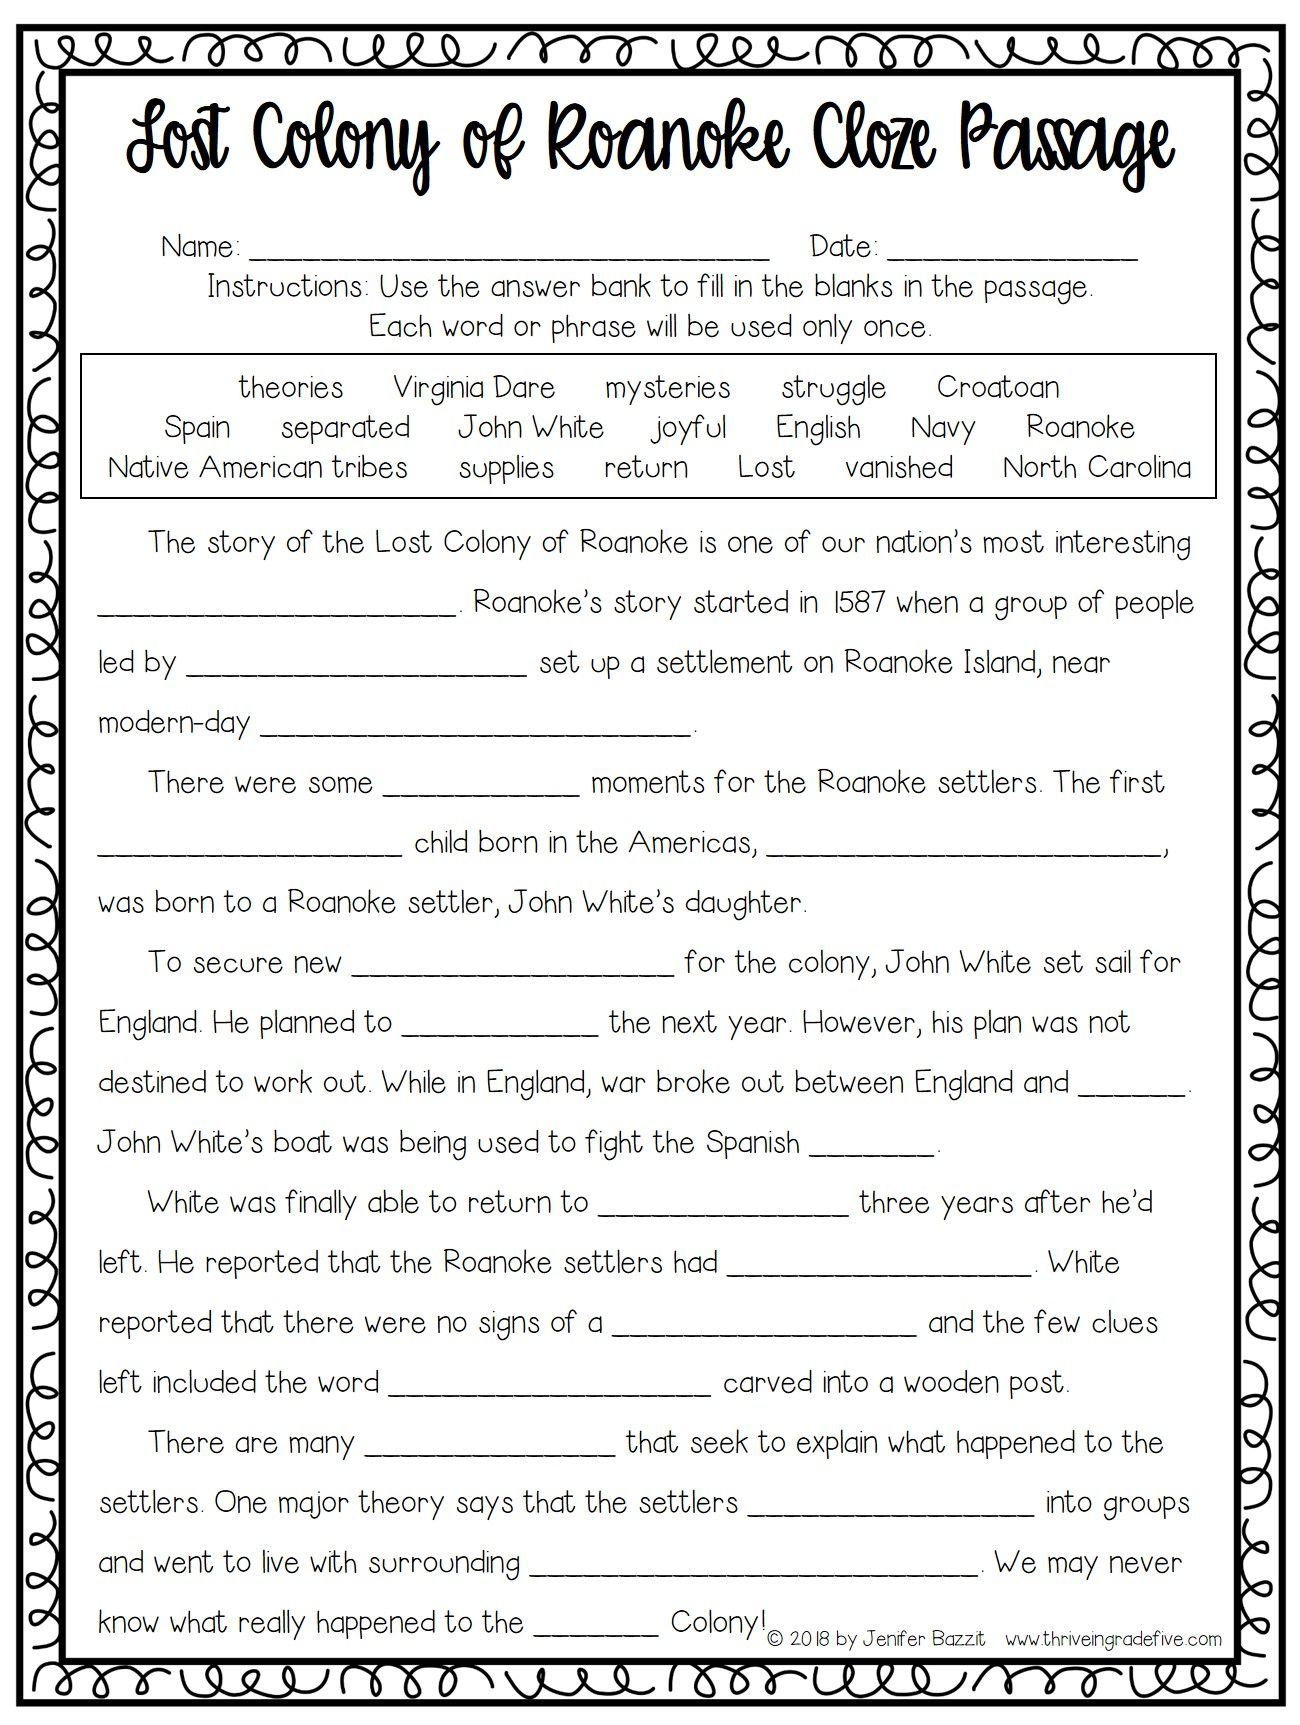 Lost Colony Of Roanoke Activity Free History Worksheets Cloze Passages Social Studies Worksheets